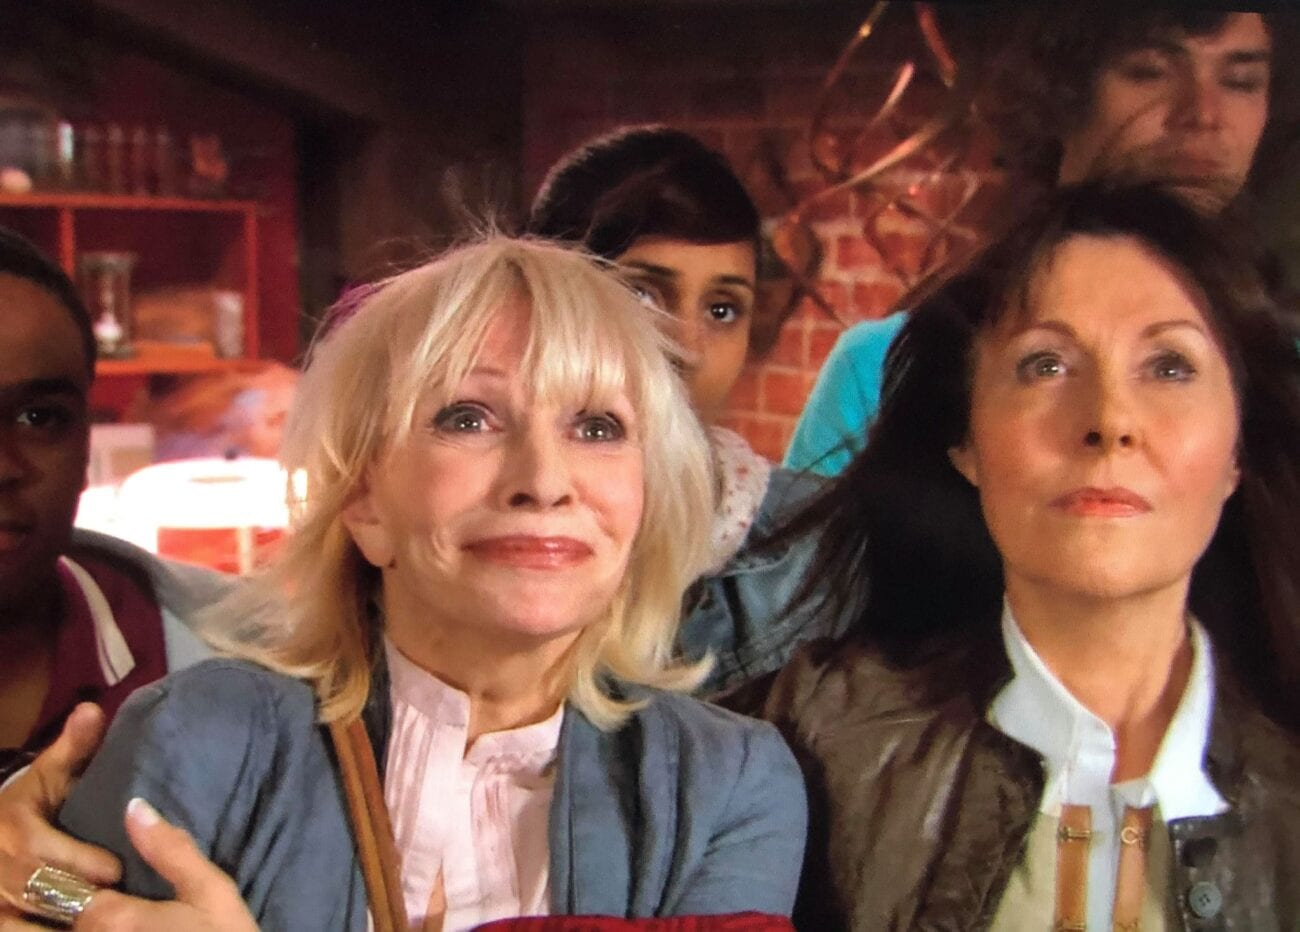 Jo, Sarah Jane, Clyde, Santiago and Rani watch the TARDIS disappear from the attic at Bannerman Road